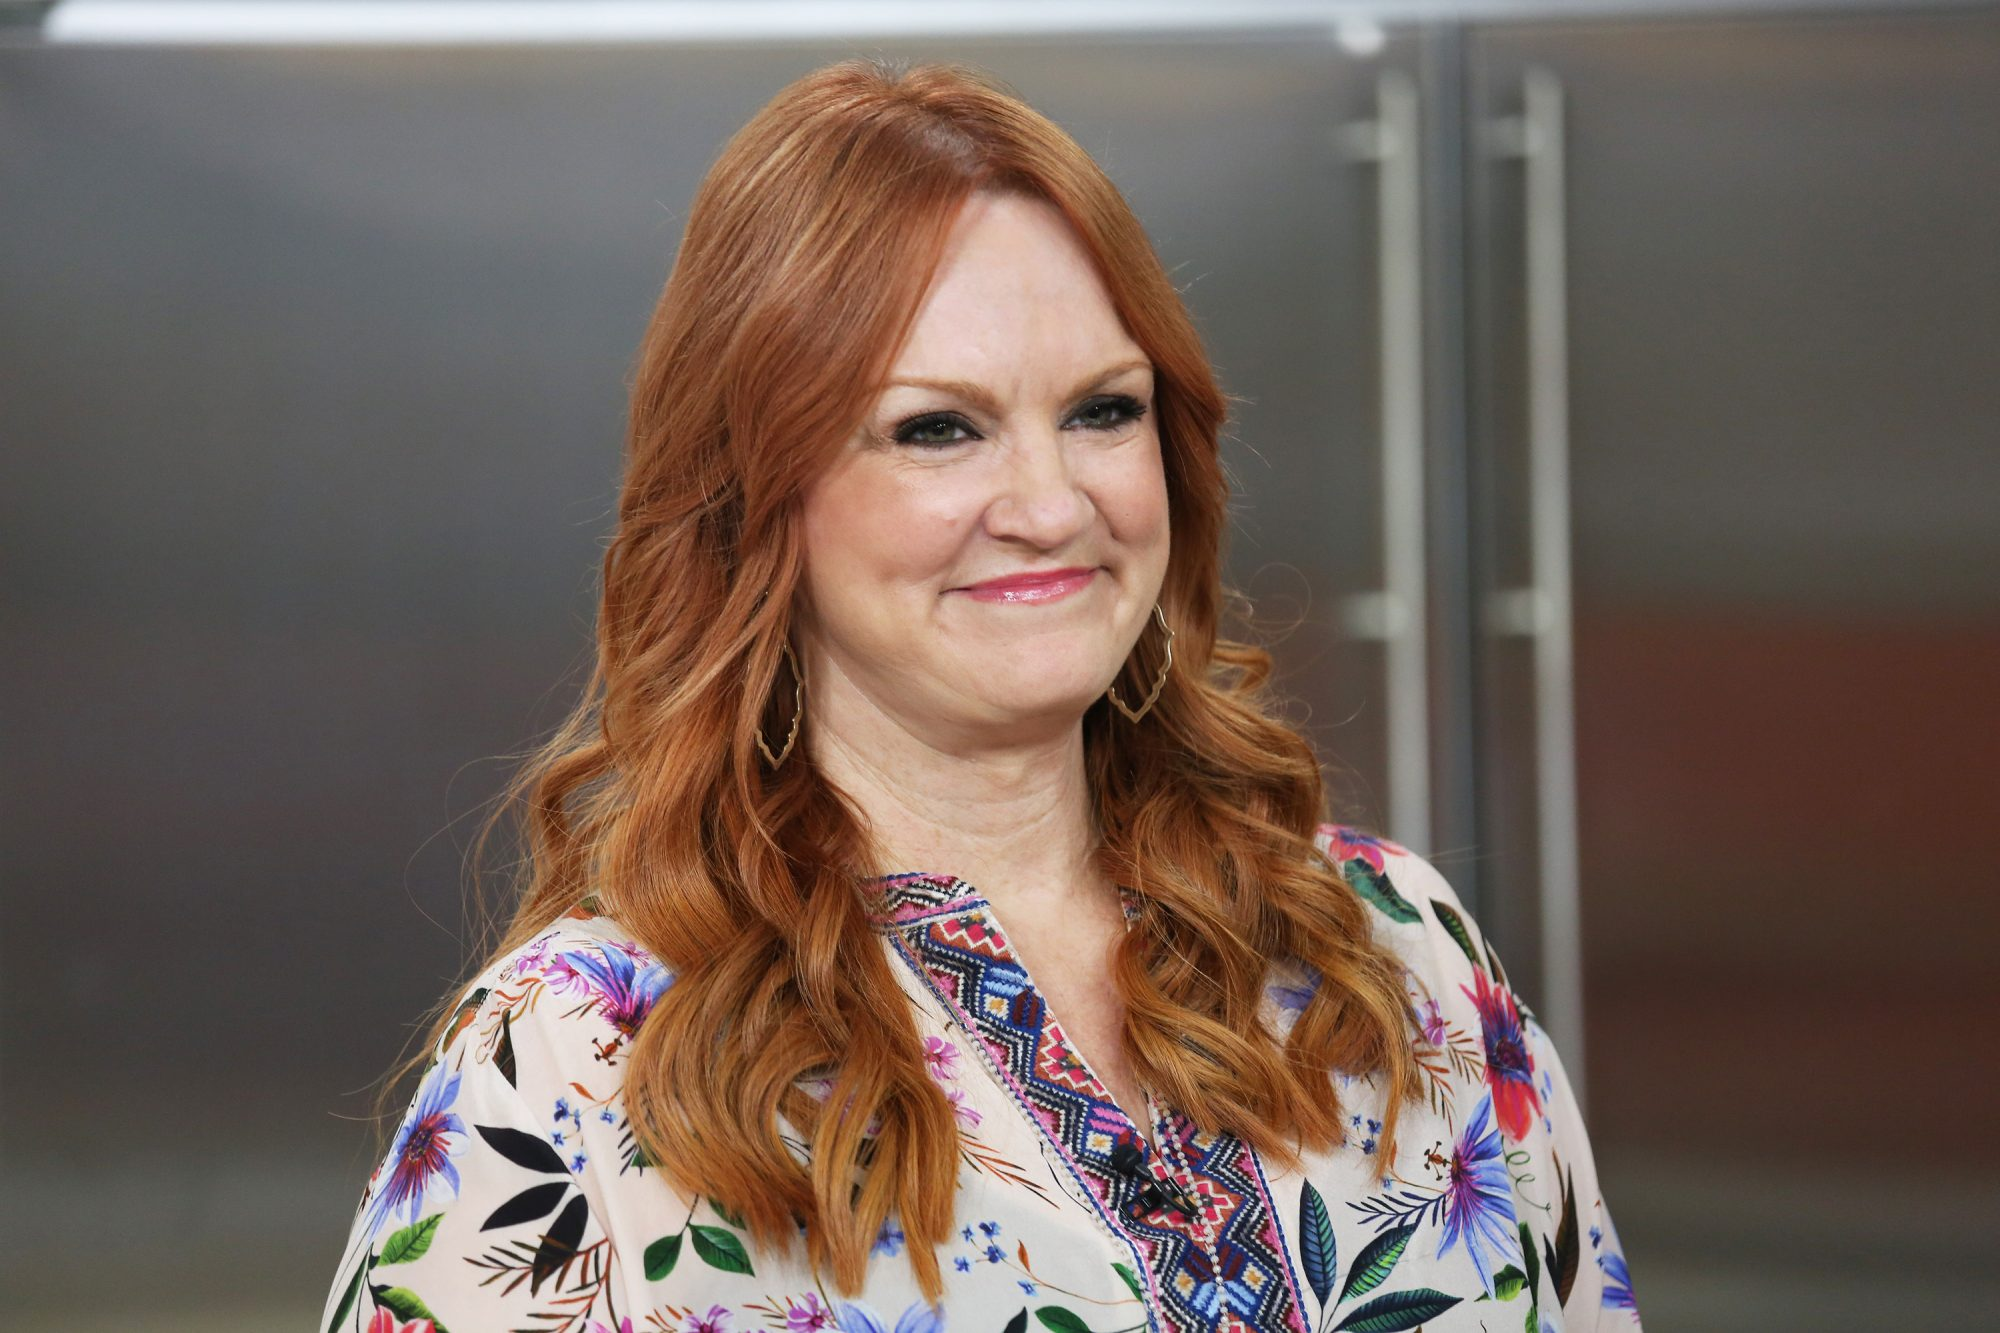 Ree Drummond on TODAY show